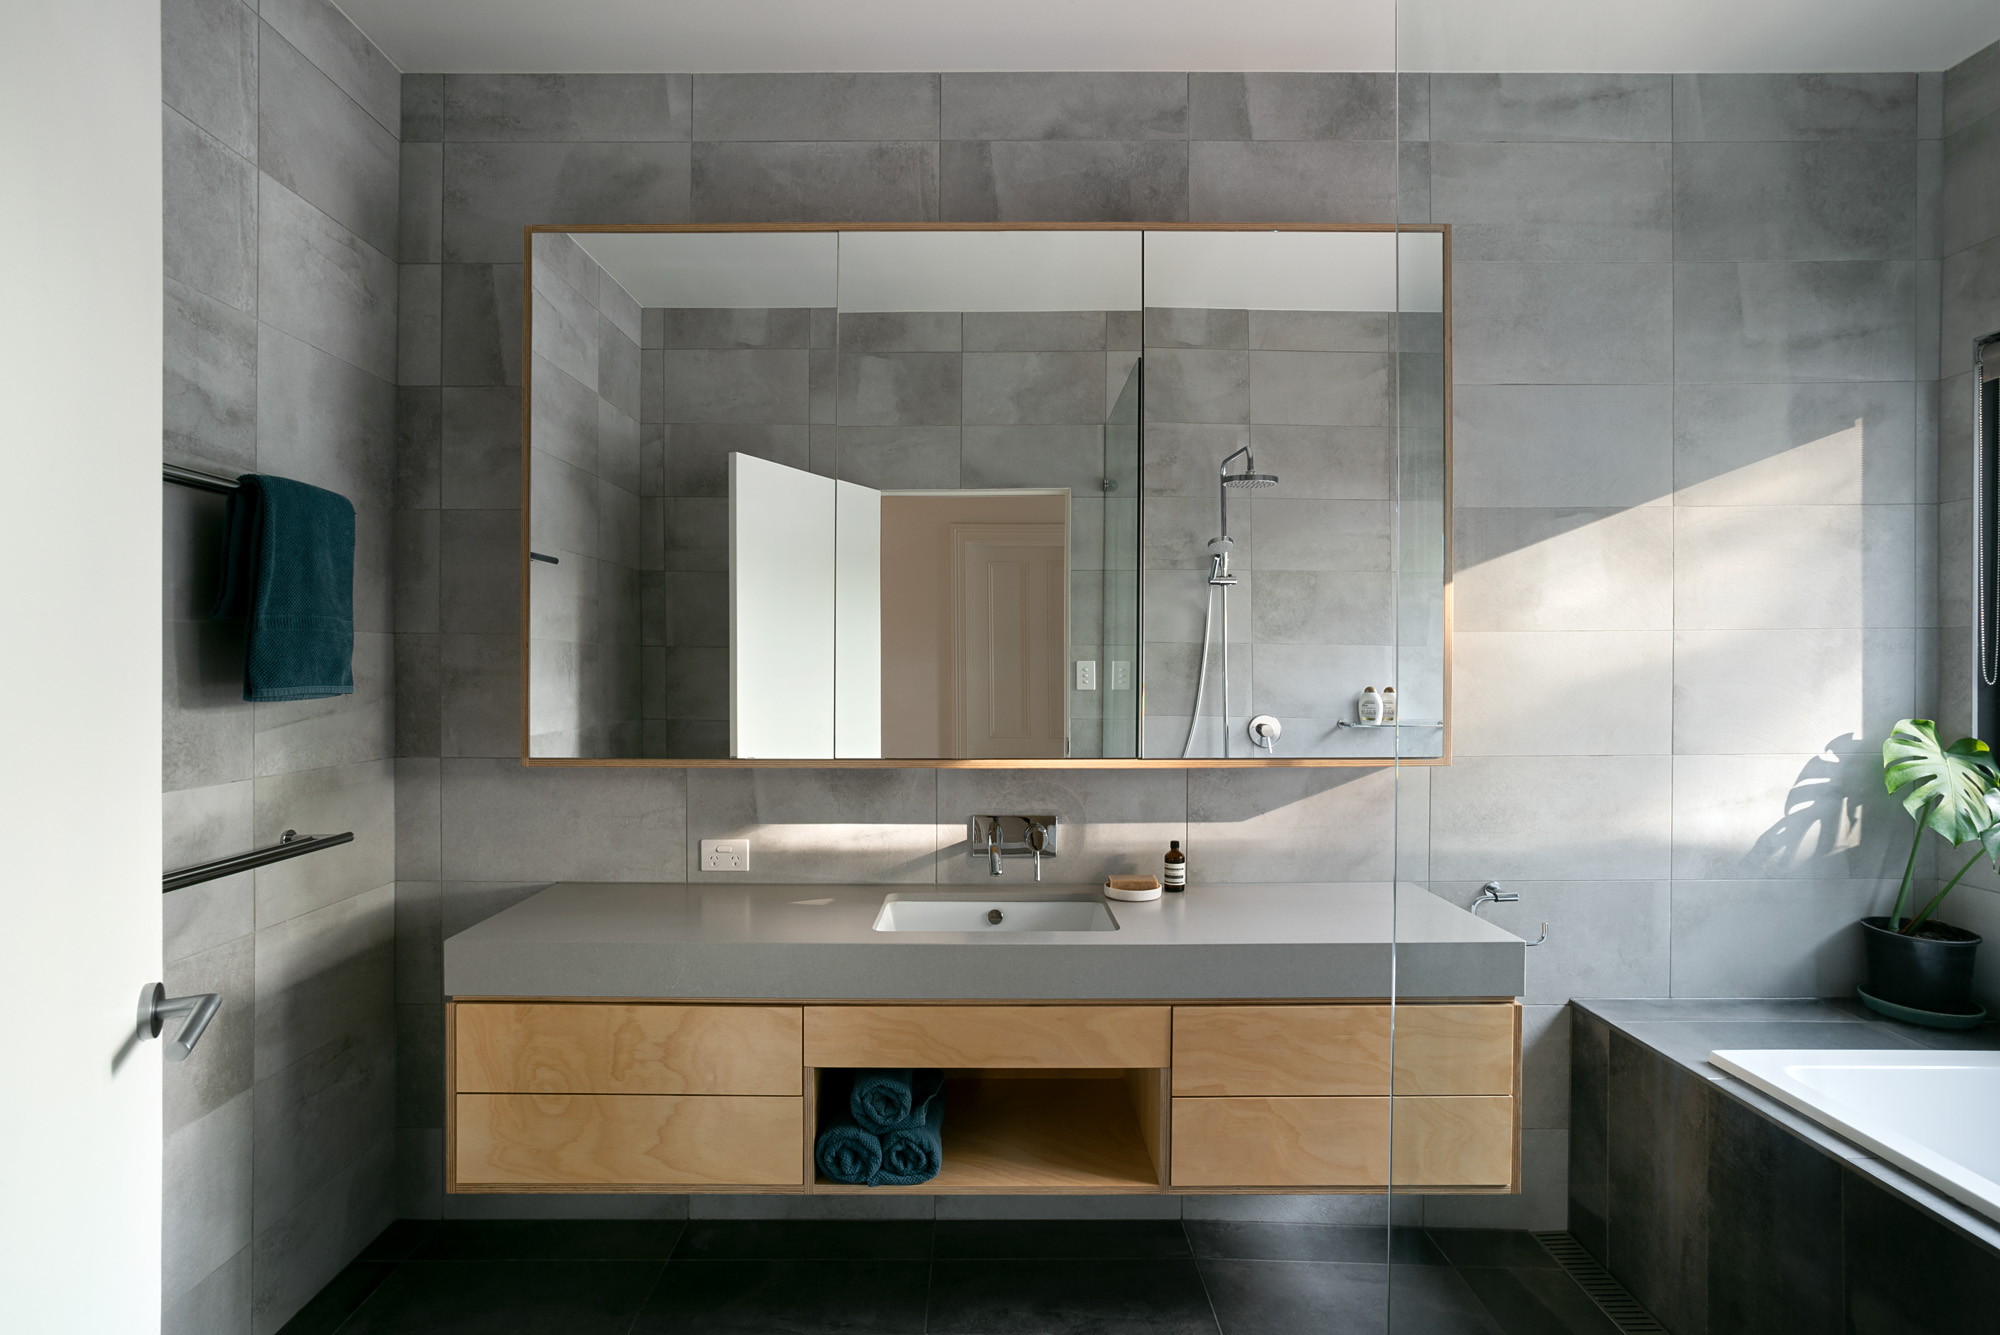 green sheep collective sustainable architect melbourne modern bathroom passive solar architecture.jpg